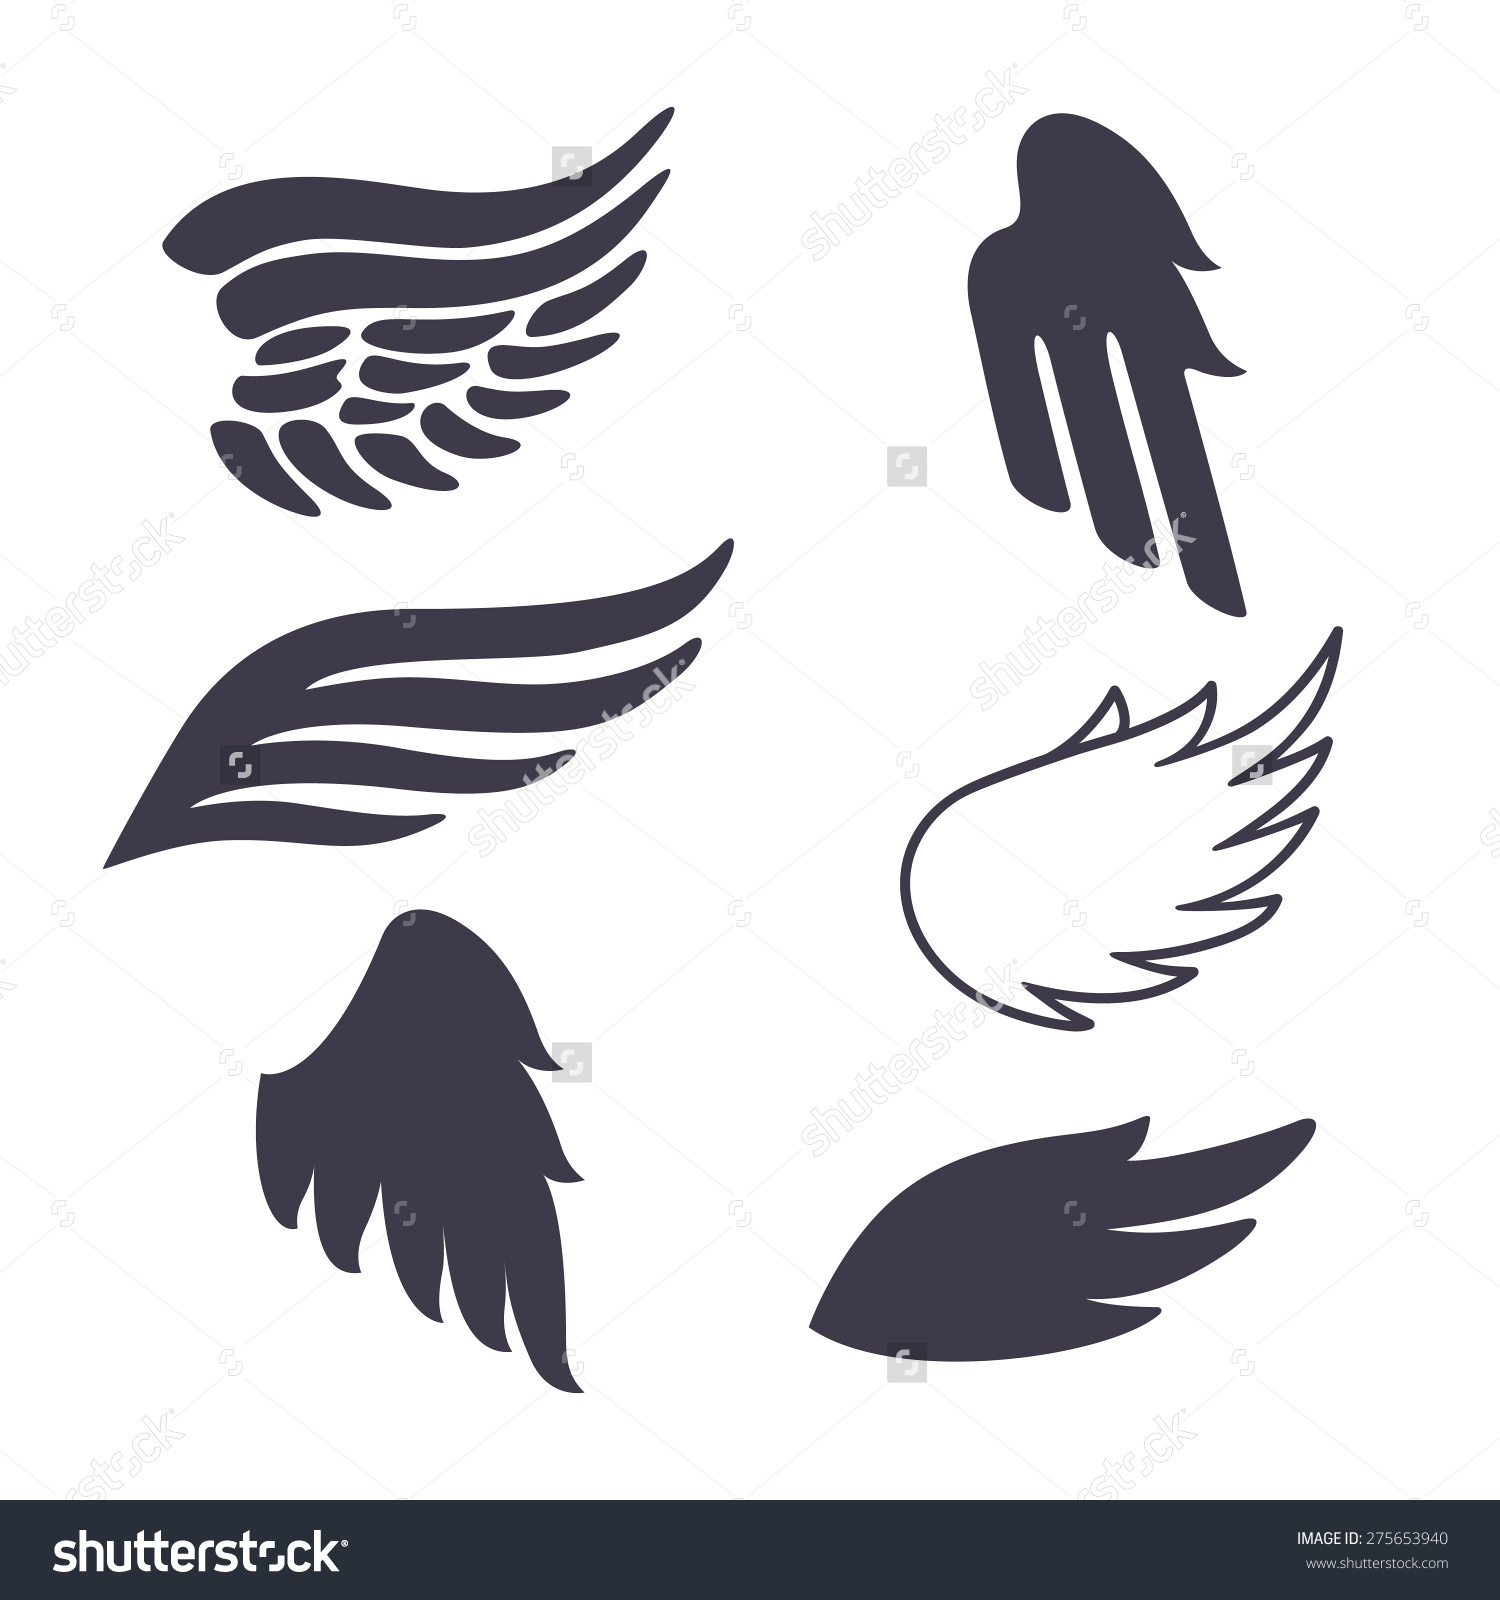 Set Six Vector Silhouettes Wings Elements Stock Vector 275653940.